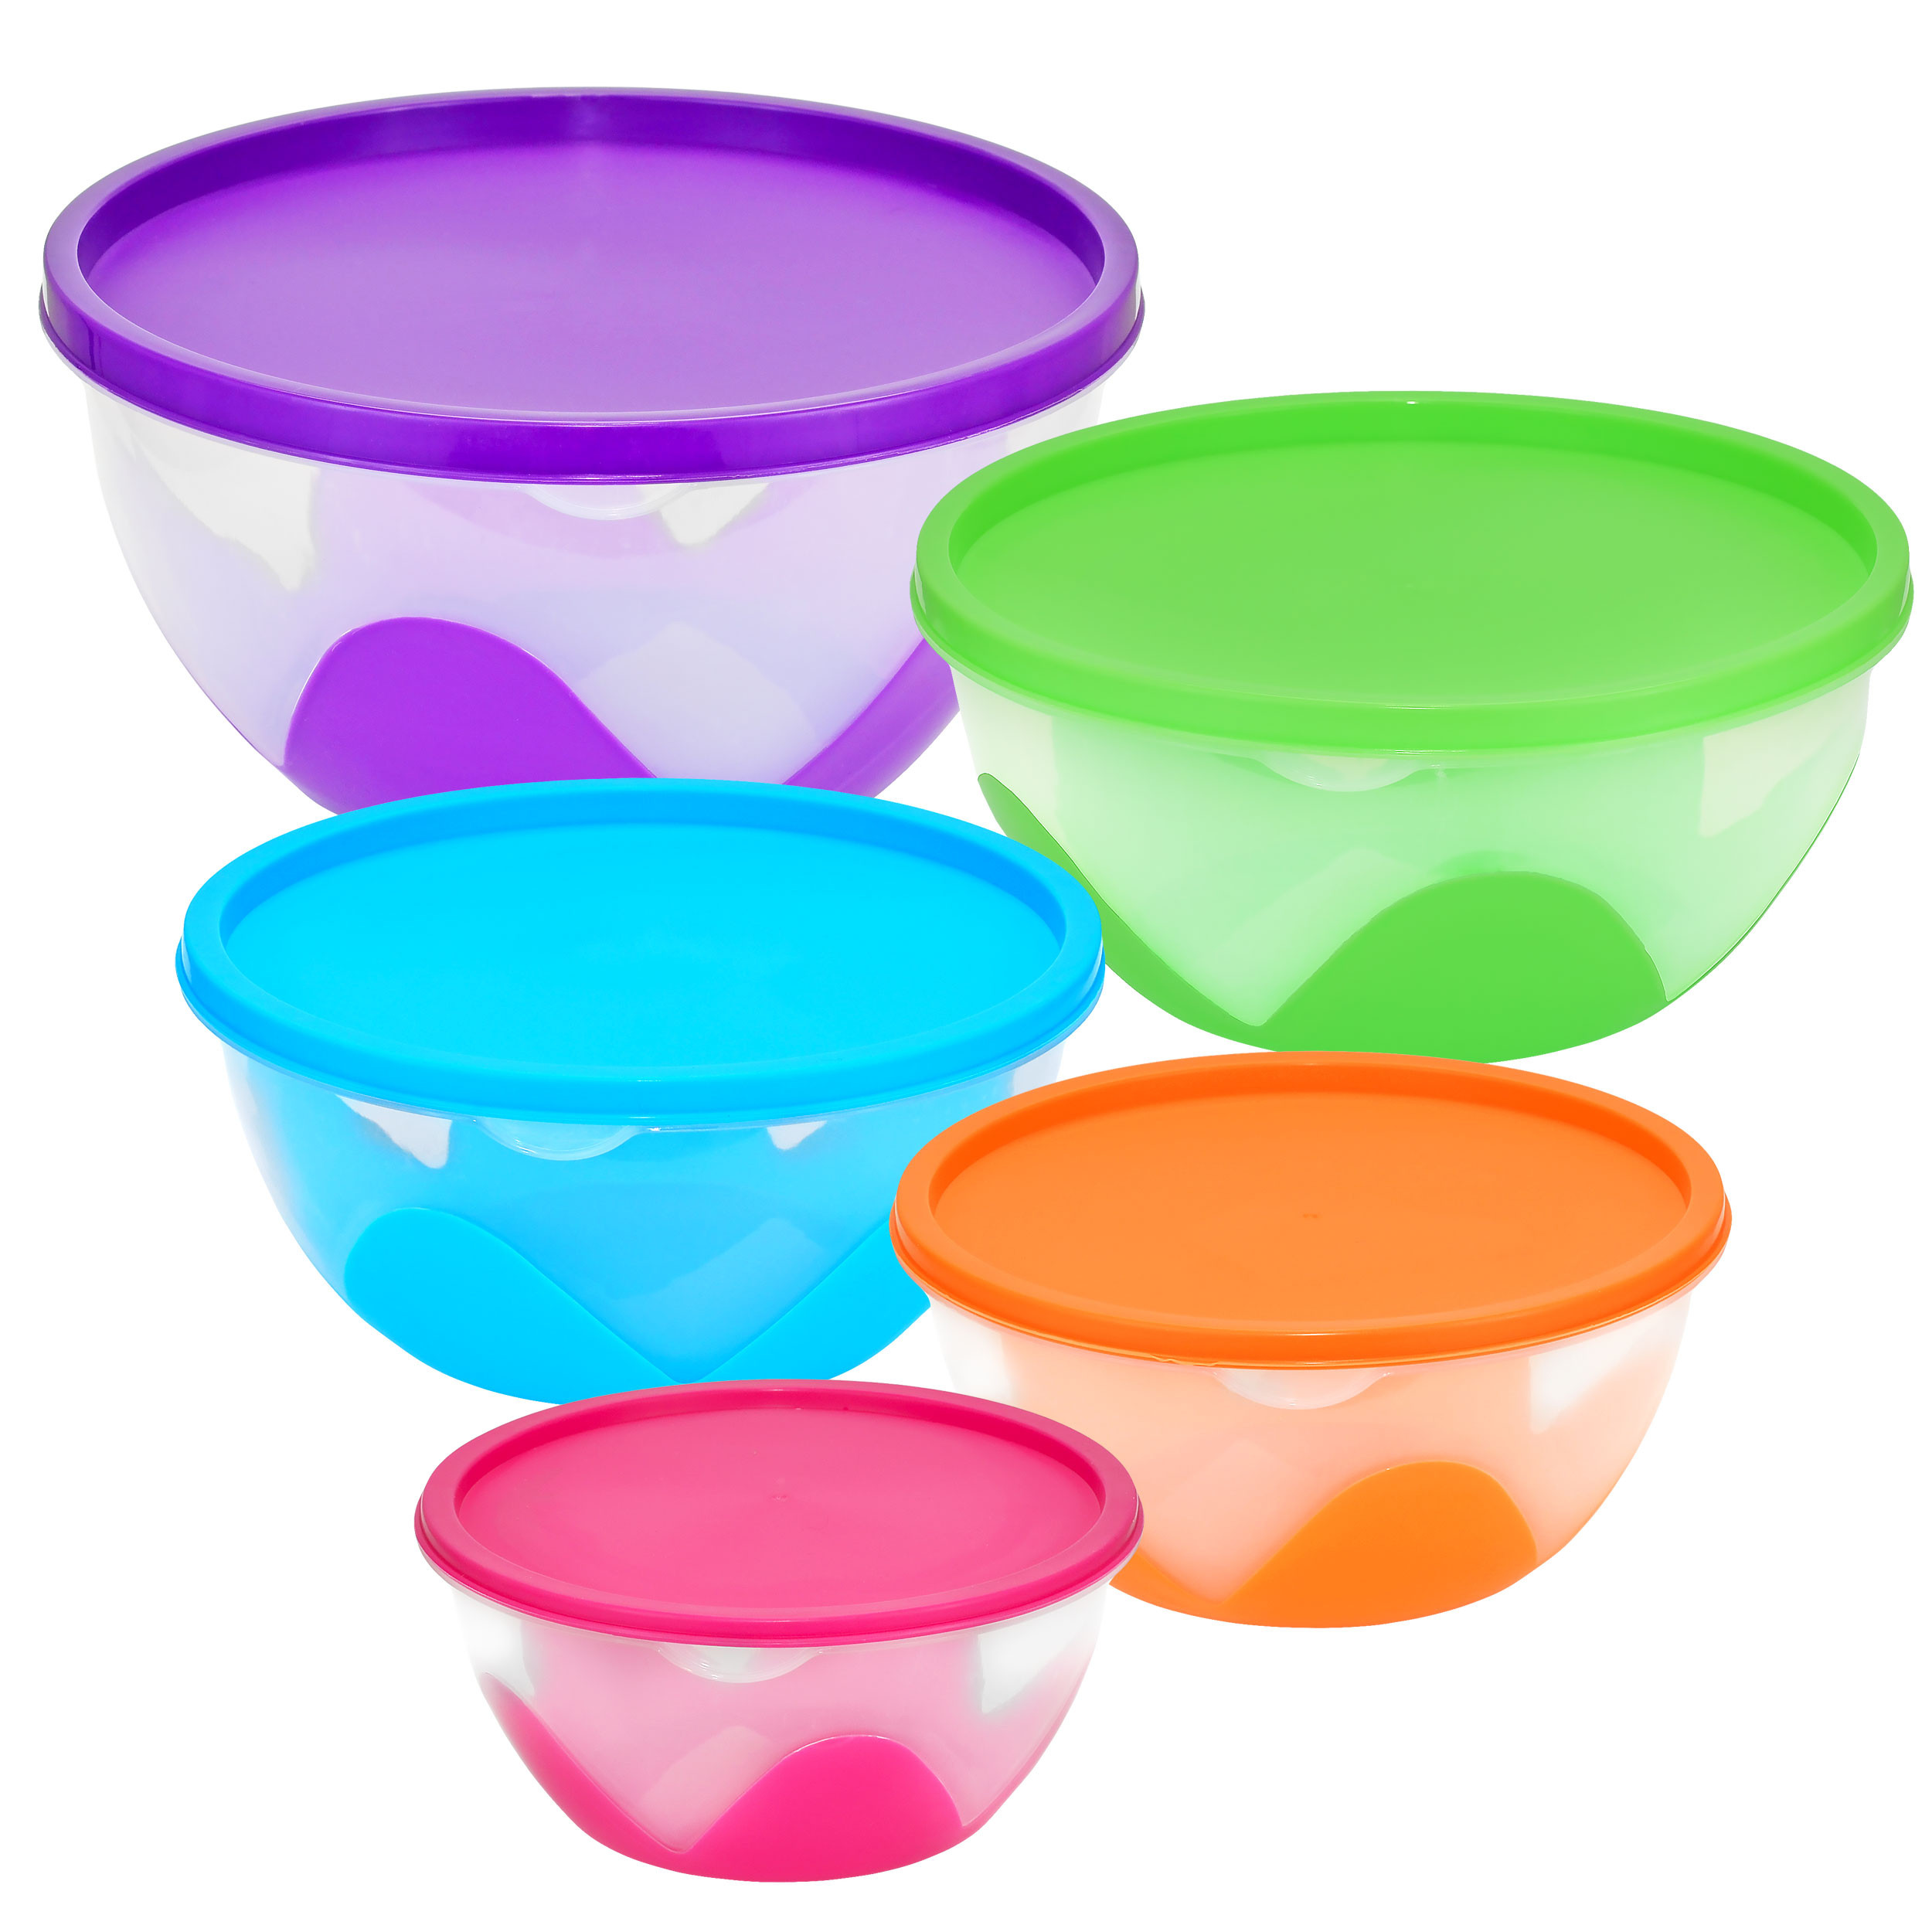 Nested & Stackable Bowl / Food Storage Containers, 5 Piece Multi-Purpose Set